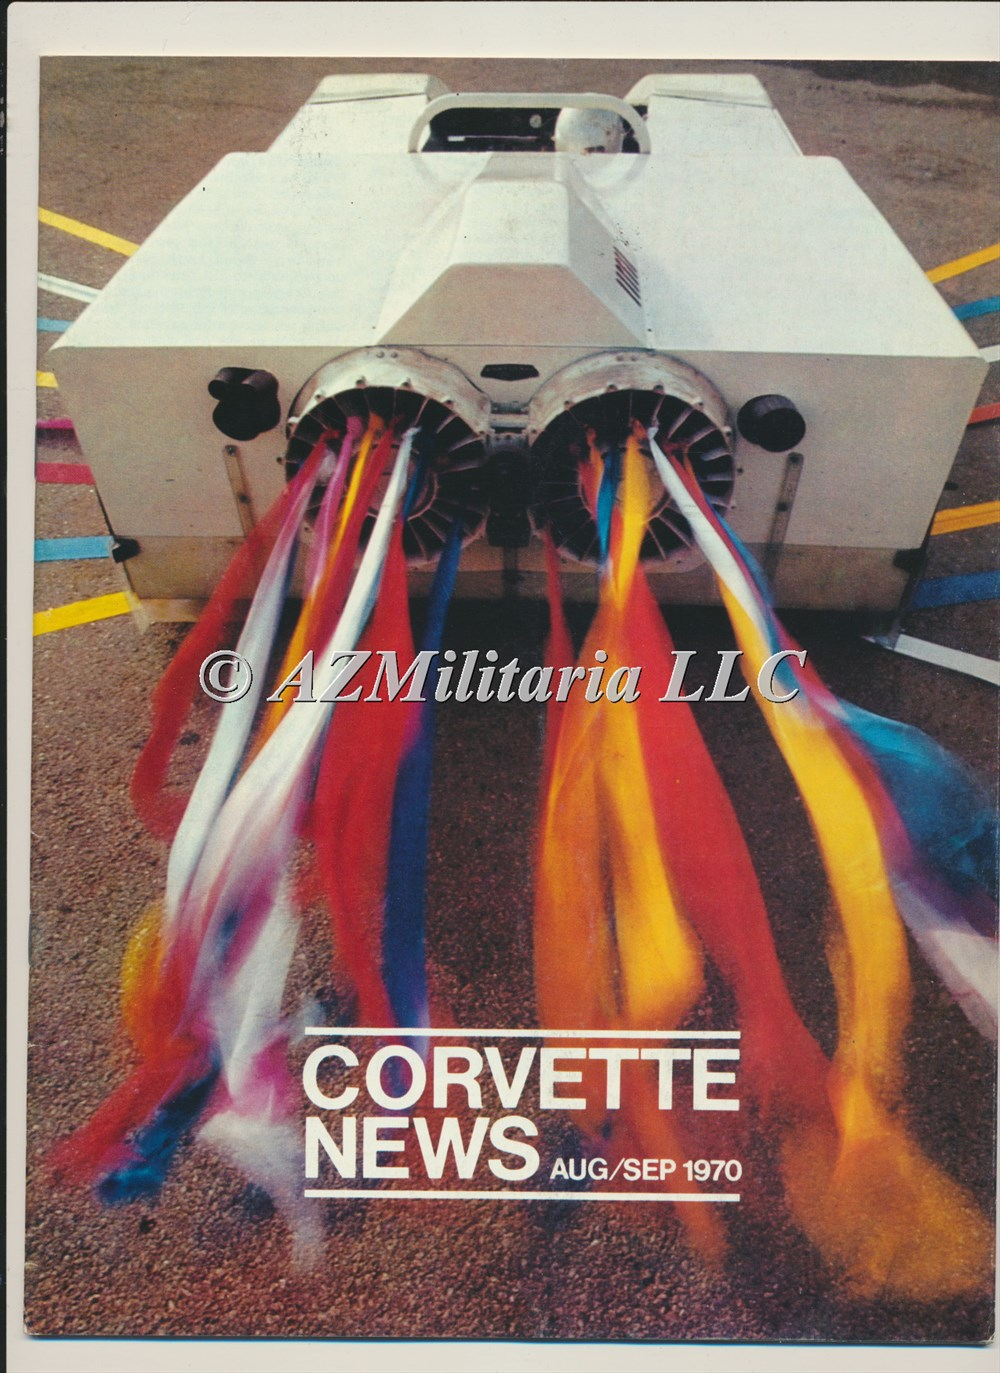 Primary image for Corvette News Aug/Sep 1970